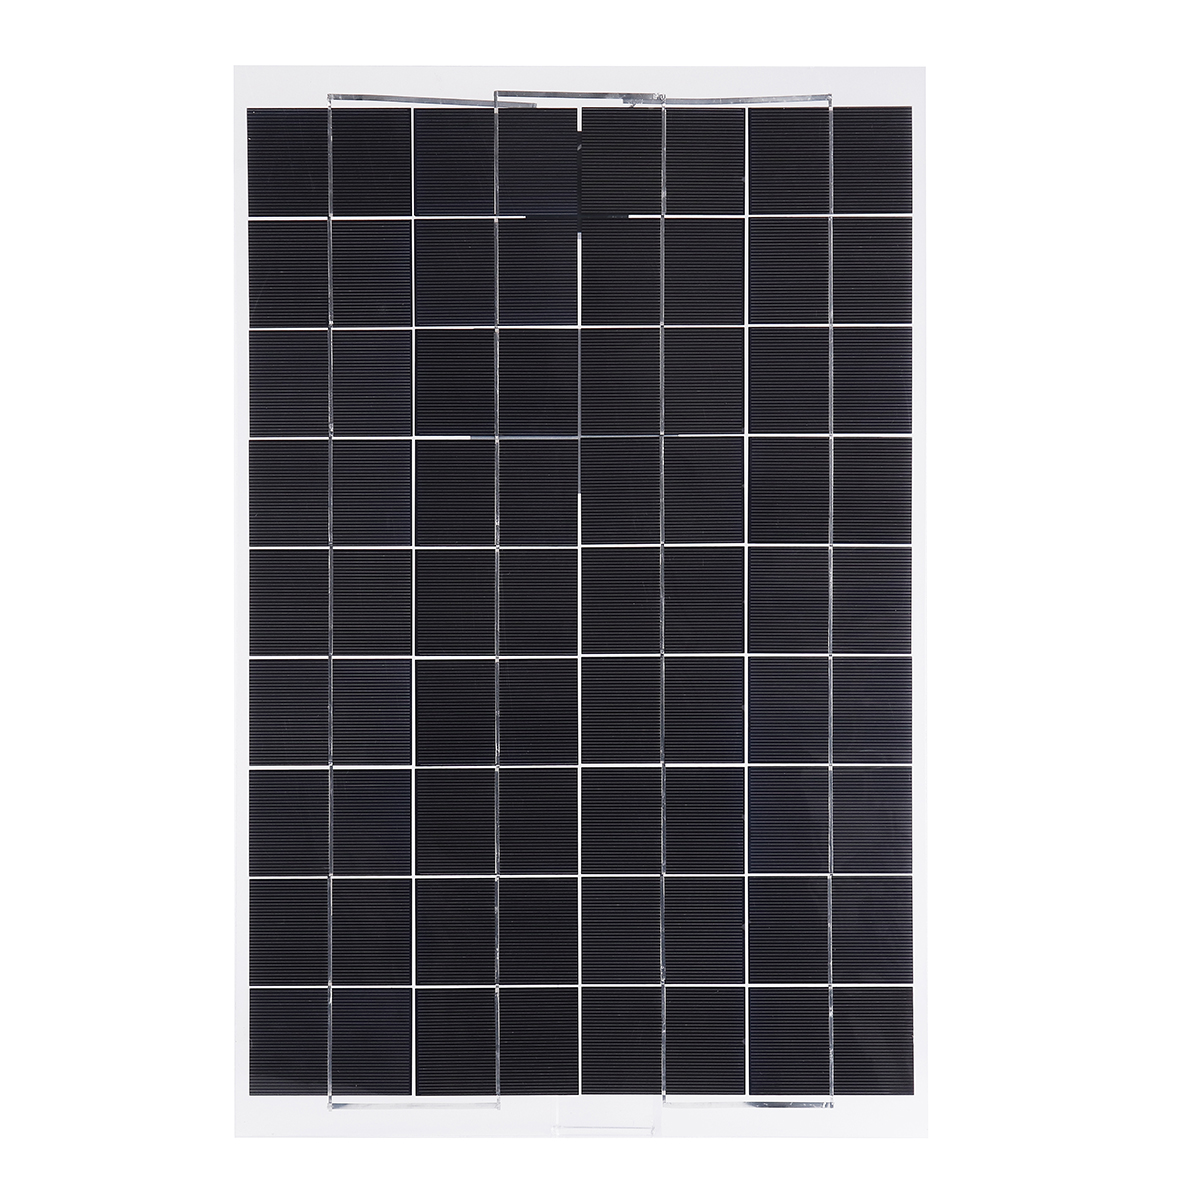 30W 12V Mono Flexible Solar Panel Battery Charger For RV Boat